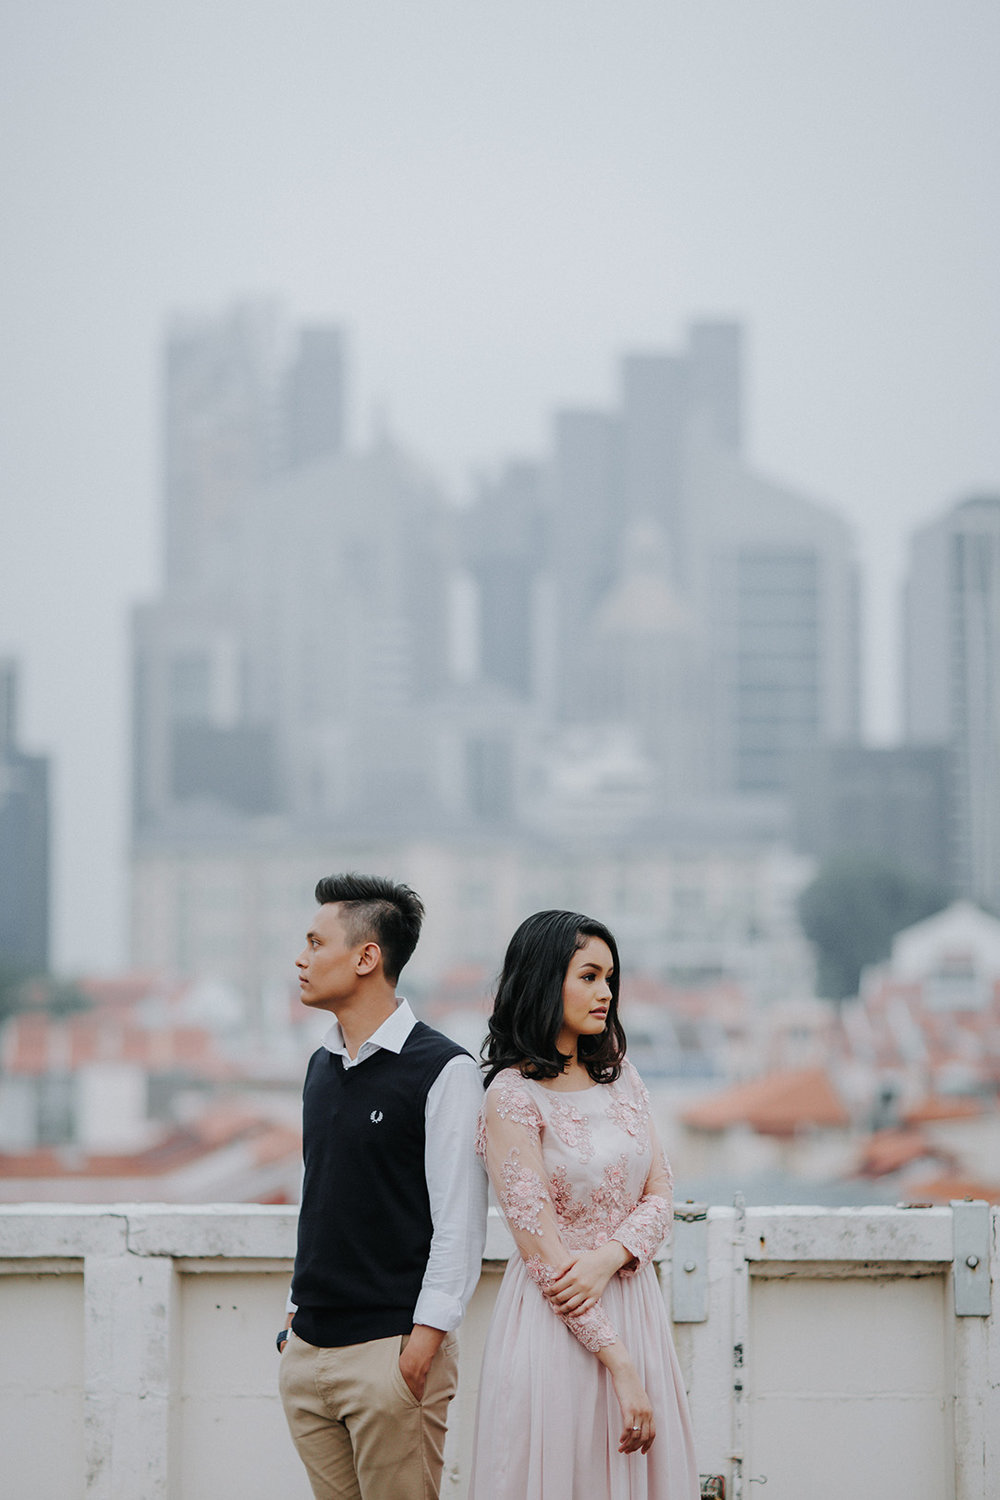 HAFIZ X MELISA PW LOW RES4.jpg